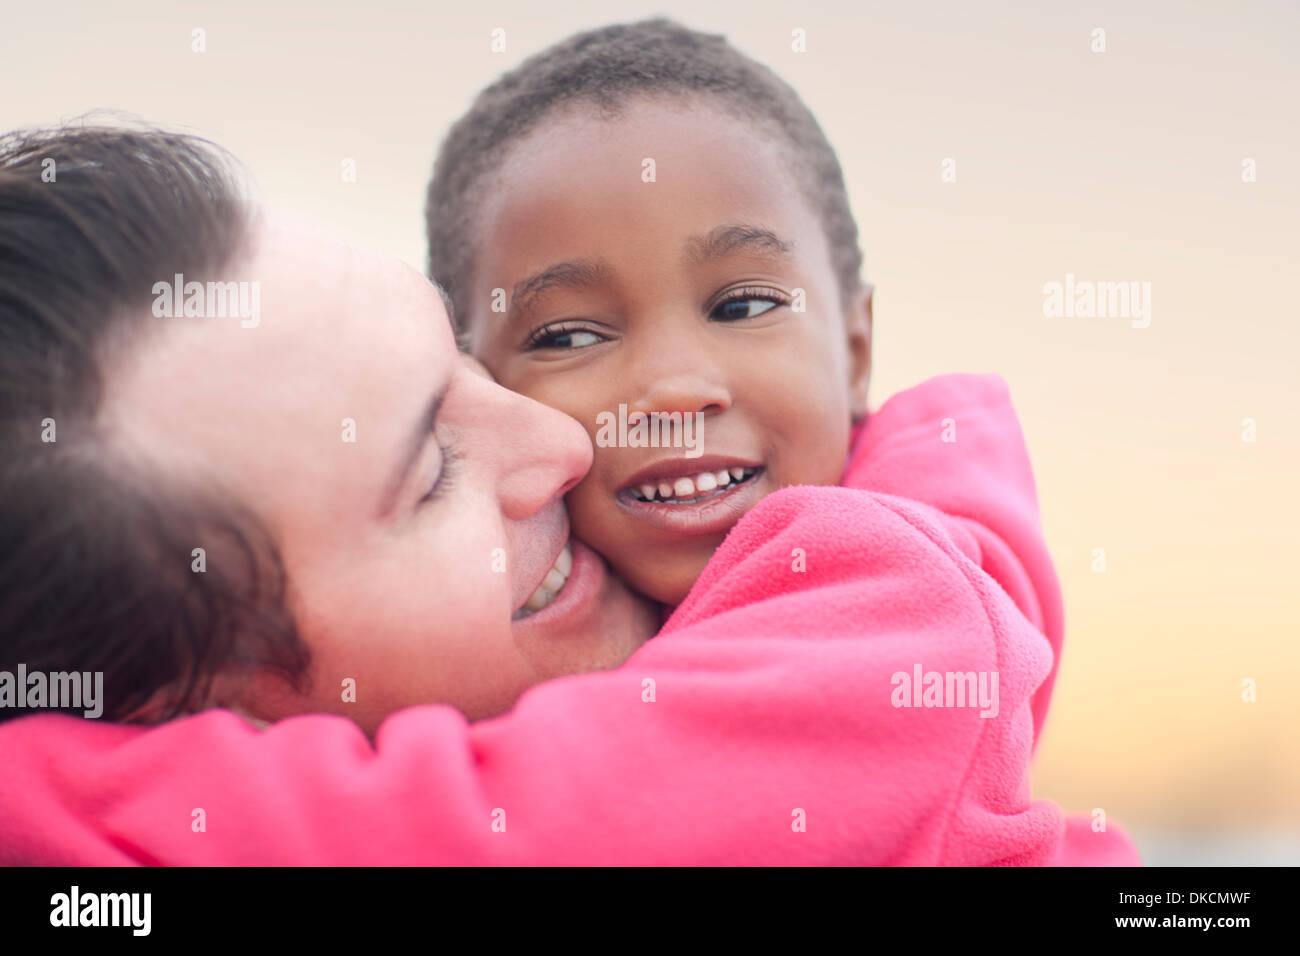 Man hugging child - Stock Image